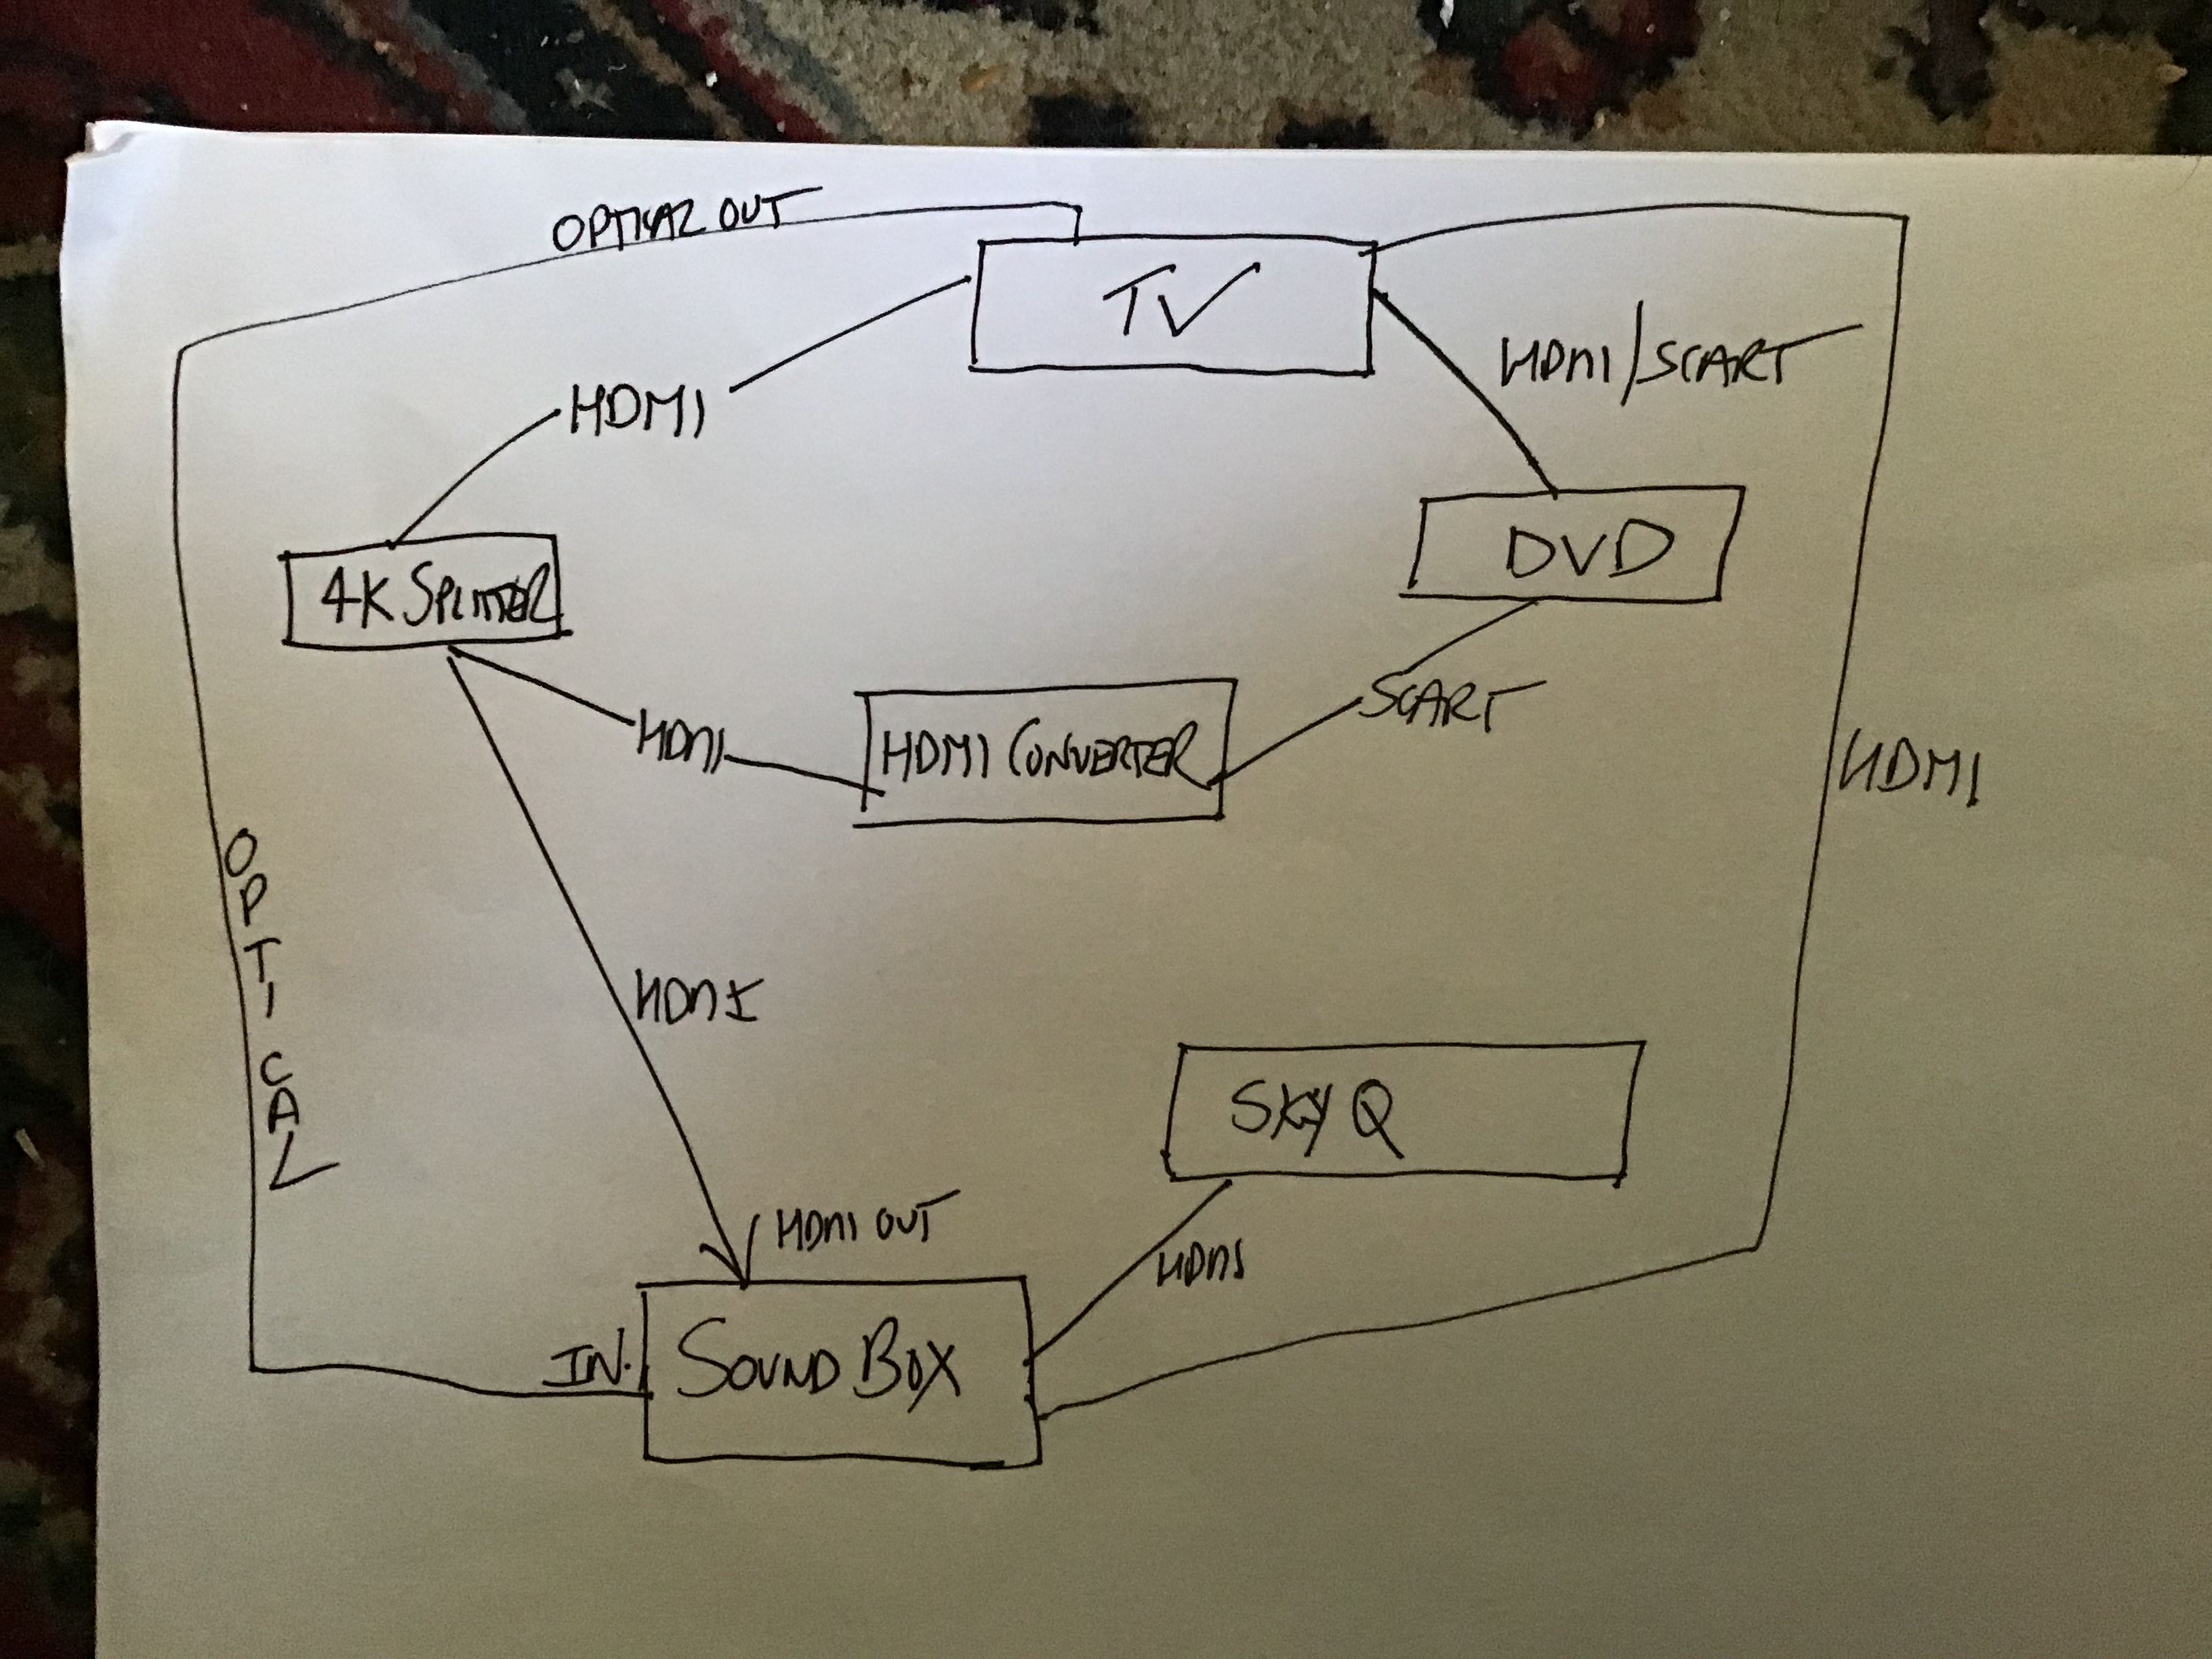 small resolution of wiring diagram dvd vcr tv